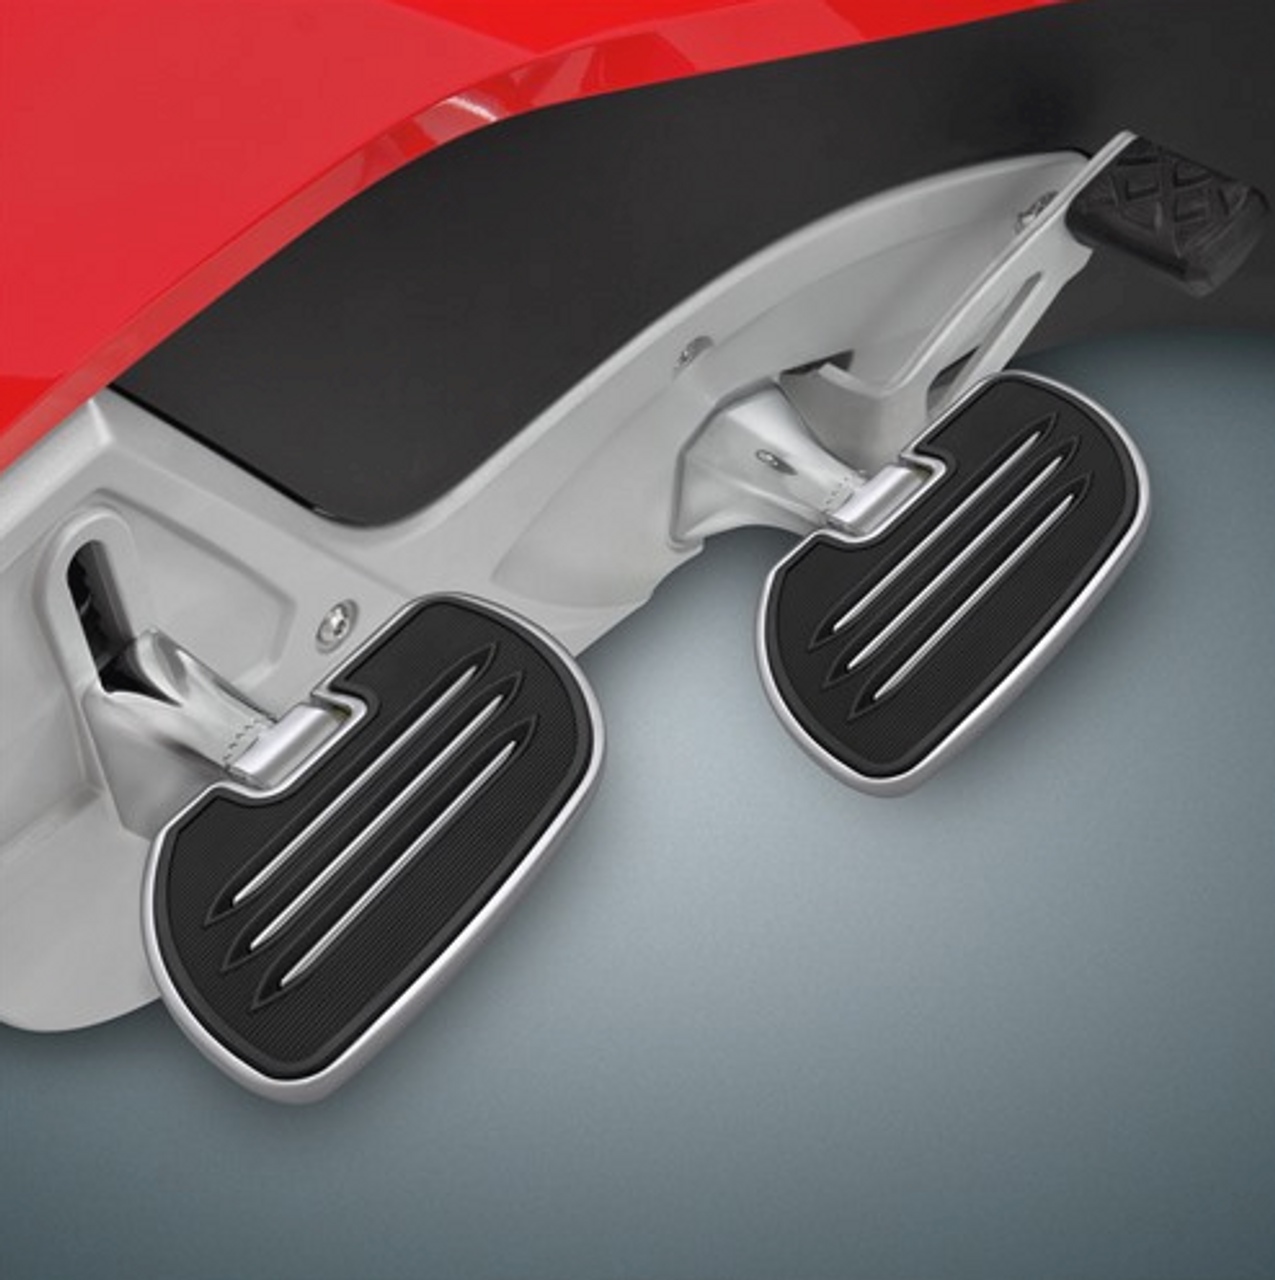 COMMANDER DRIVER FLOORBOARDS for the CAN AM SPYDER RT (SC-41-186) (Commander Driver Board Shown With 41-185 Passenger Board On Spyder RT) (SOLD SEPARATELY)